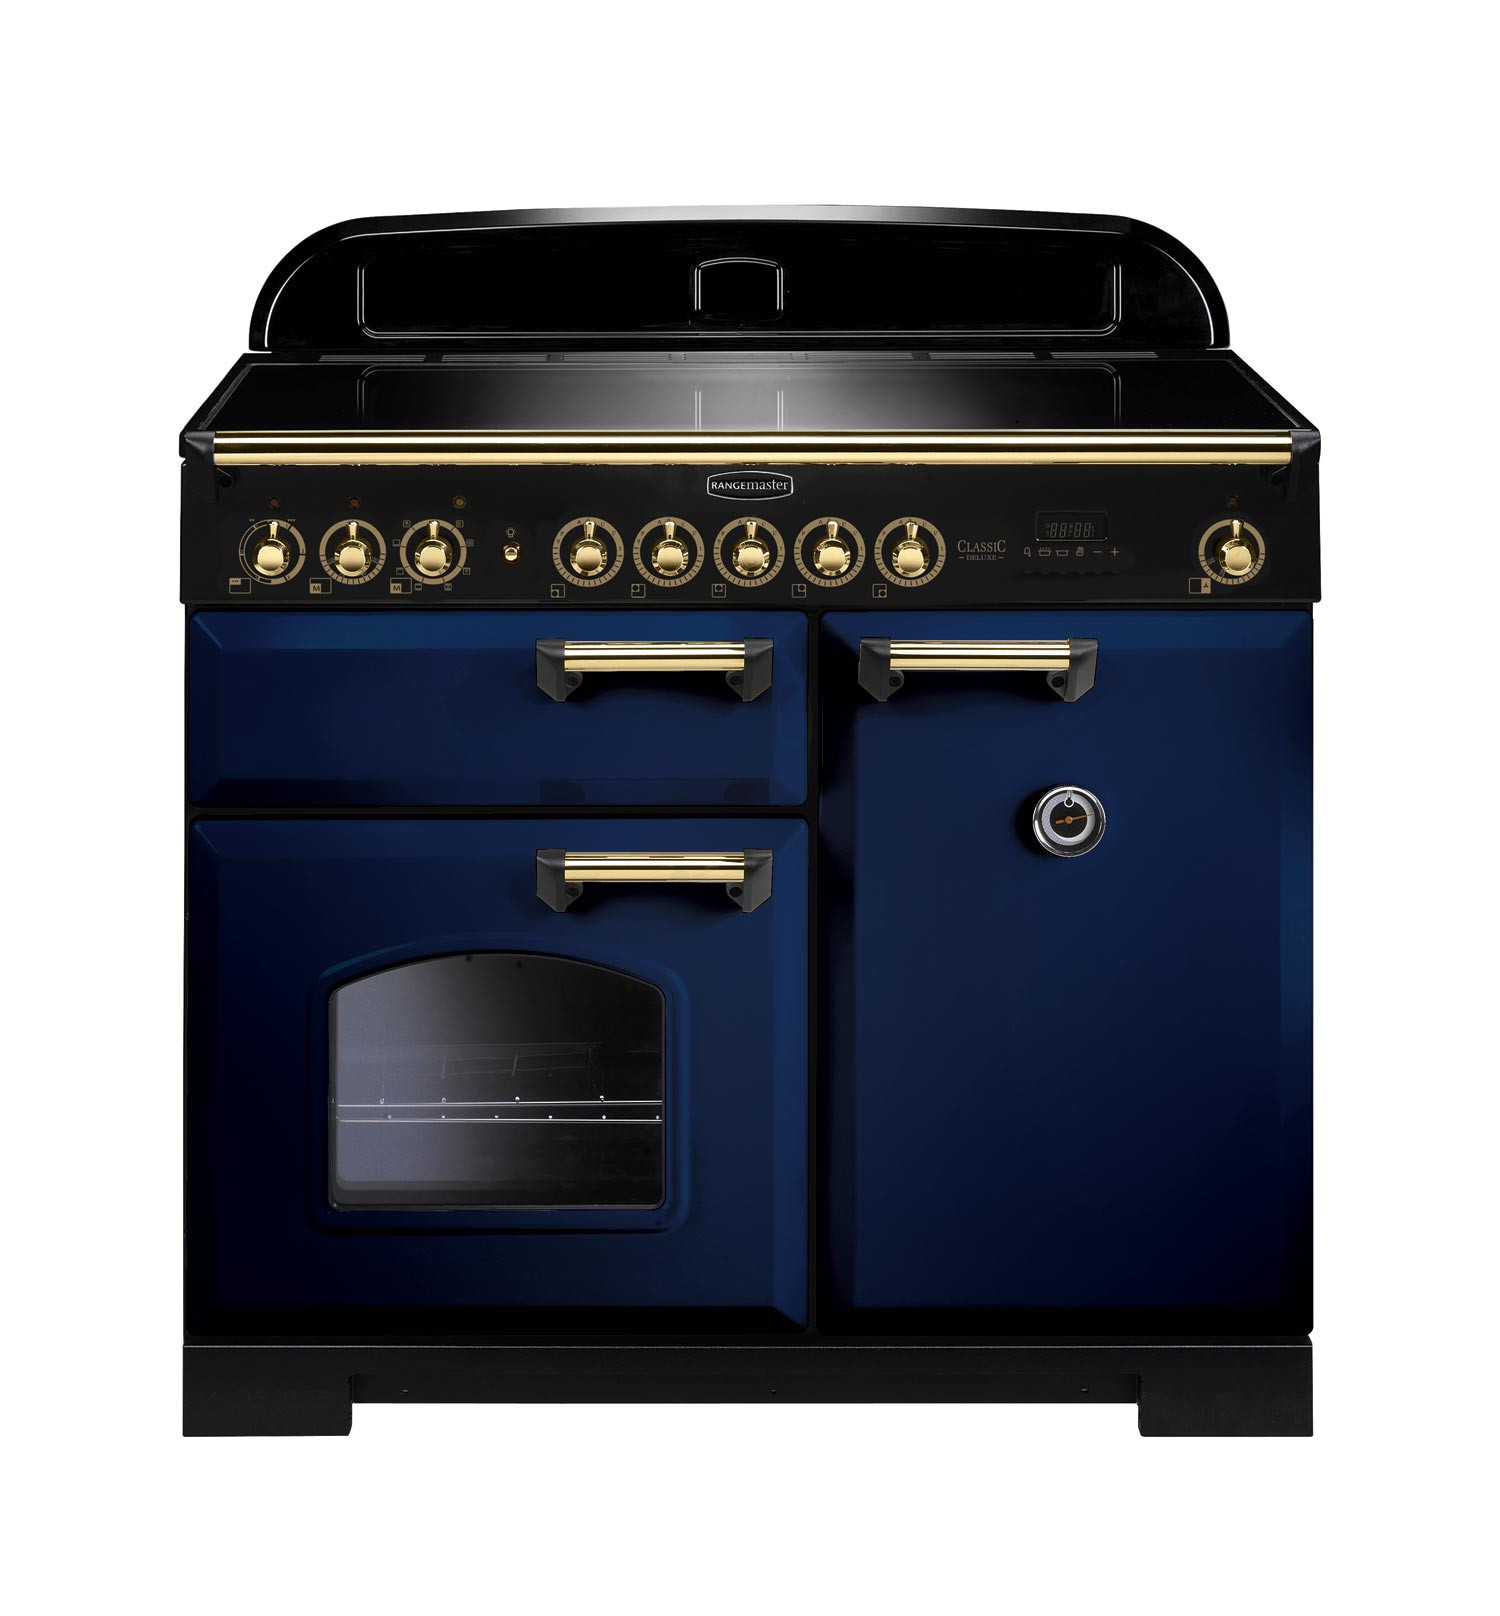 Rangemaster Classic Deluxe 100 Induction Regal Blue/Brass Trim Range Cooker CDL100EIRB/B 114020